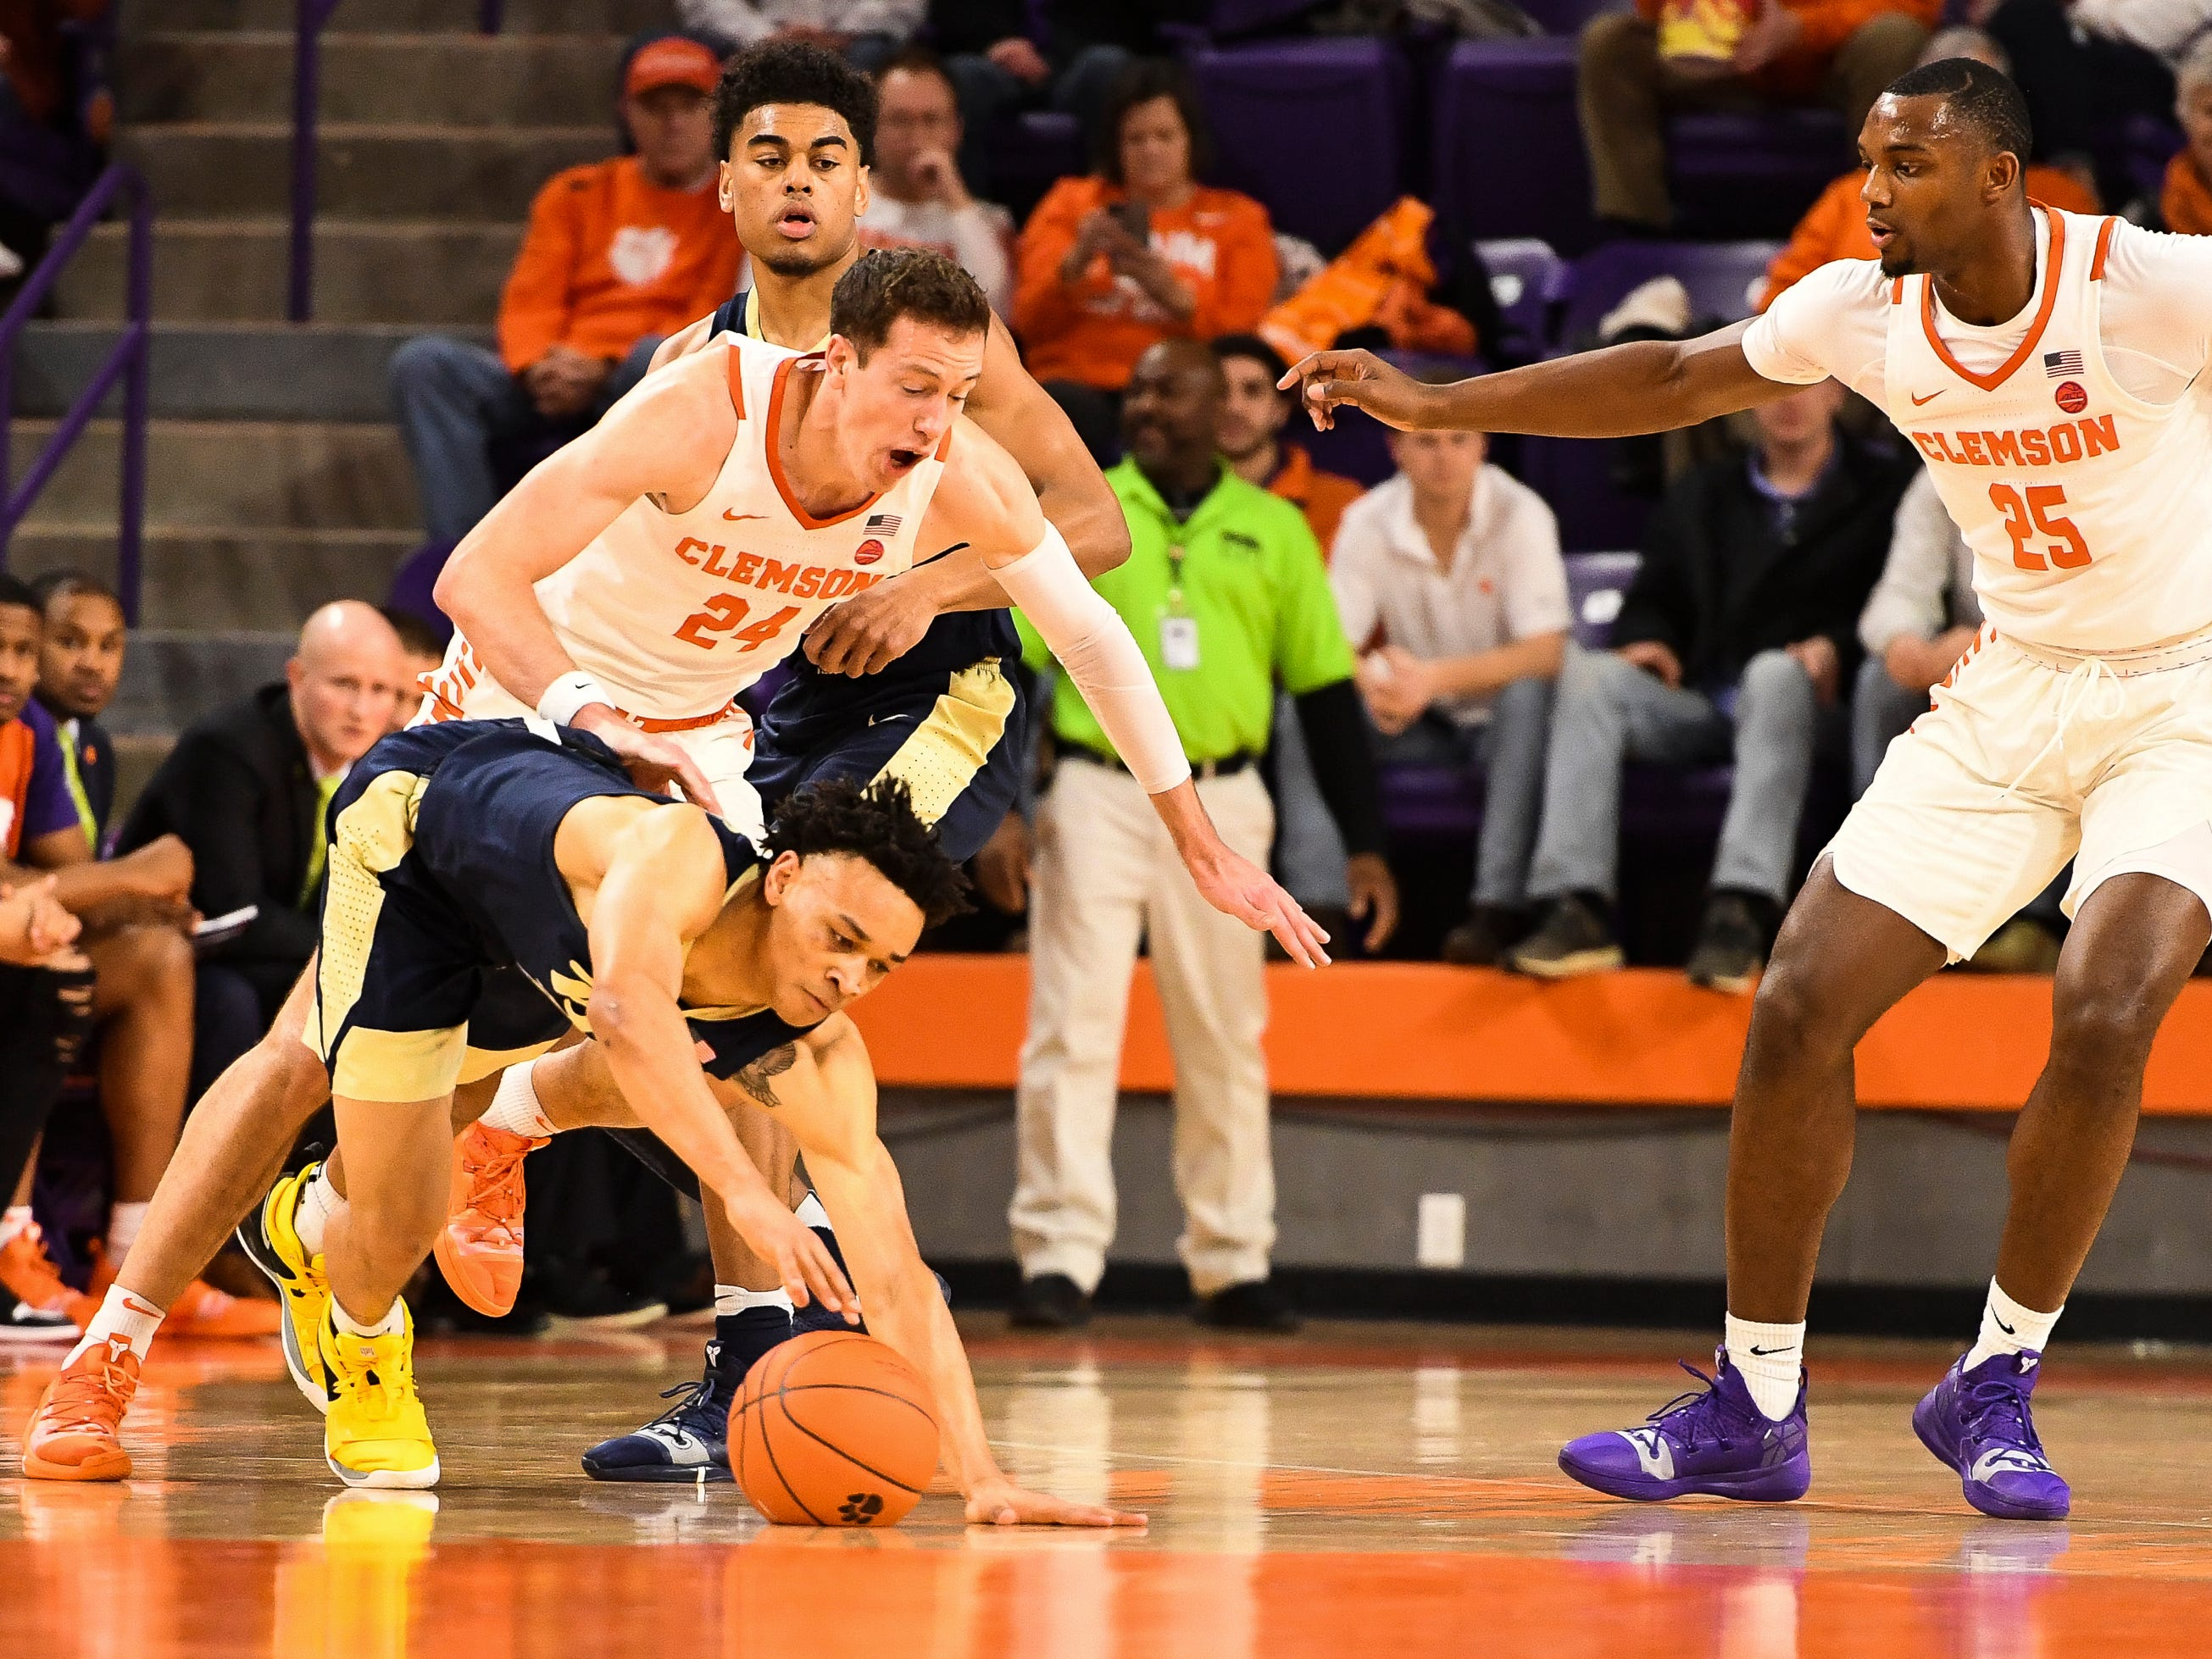 PittsburghÕs Trey McGowens (2) attempts to recover the ball after a fight for possession with Clemson forward David Skara (24) at Littlejohn Stadium on Tuesday, Jan. 29, 2019.